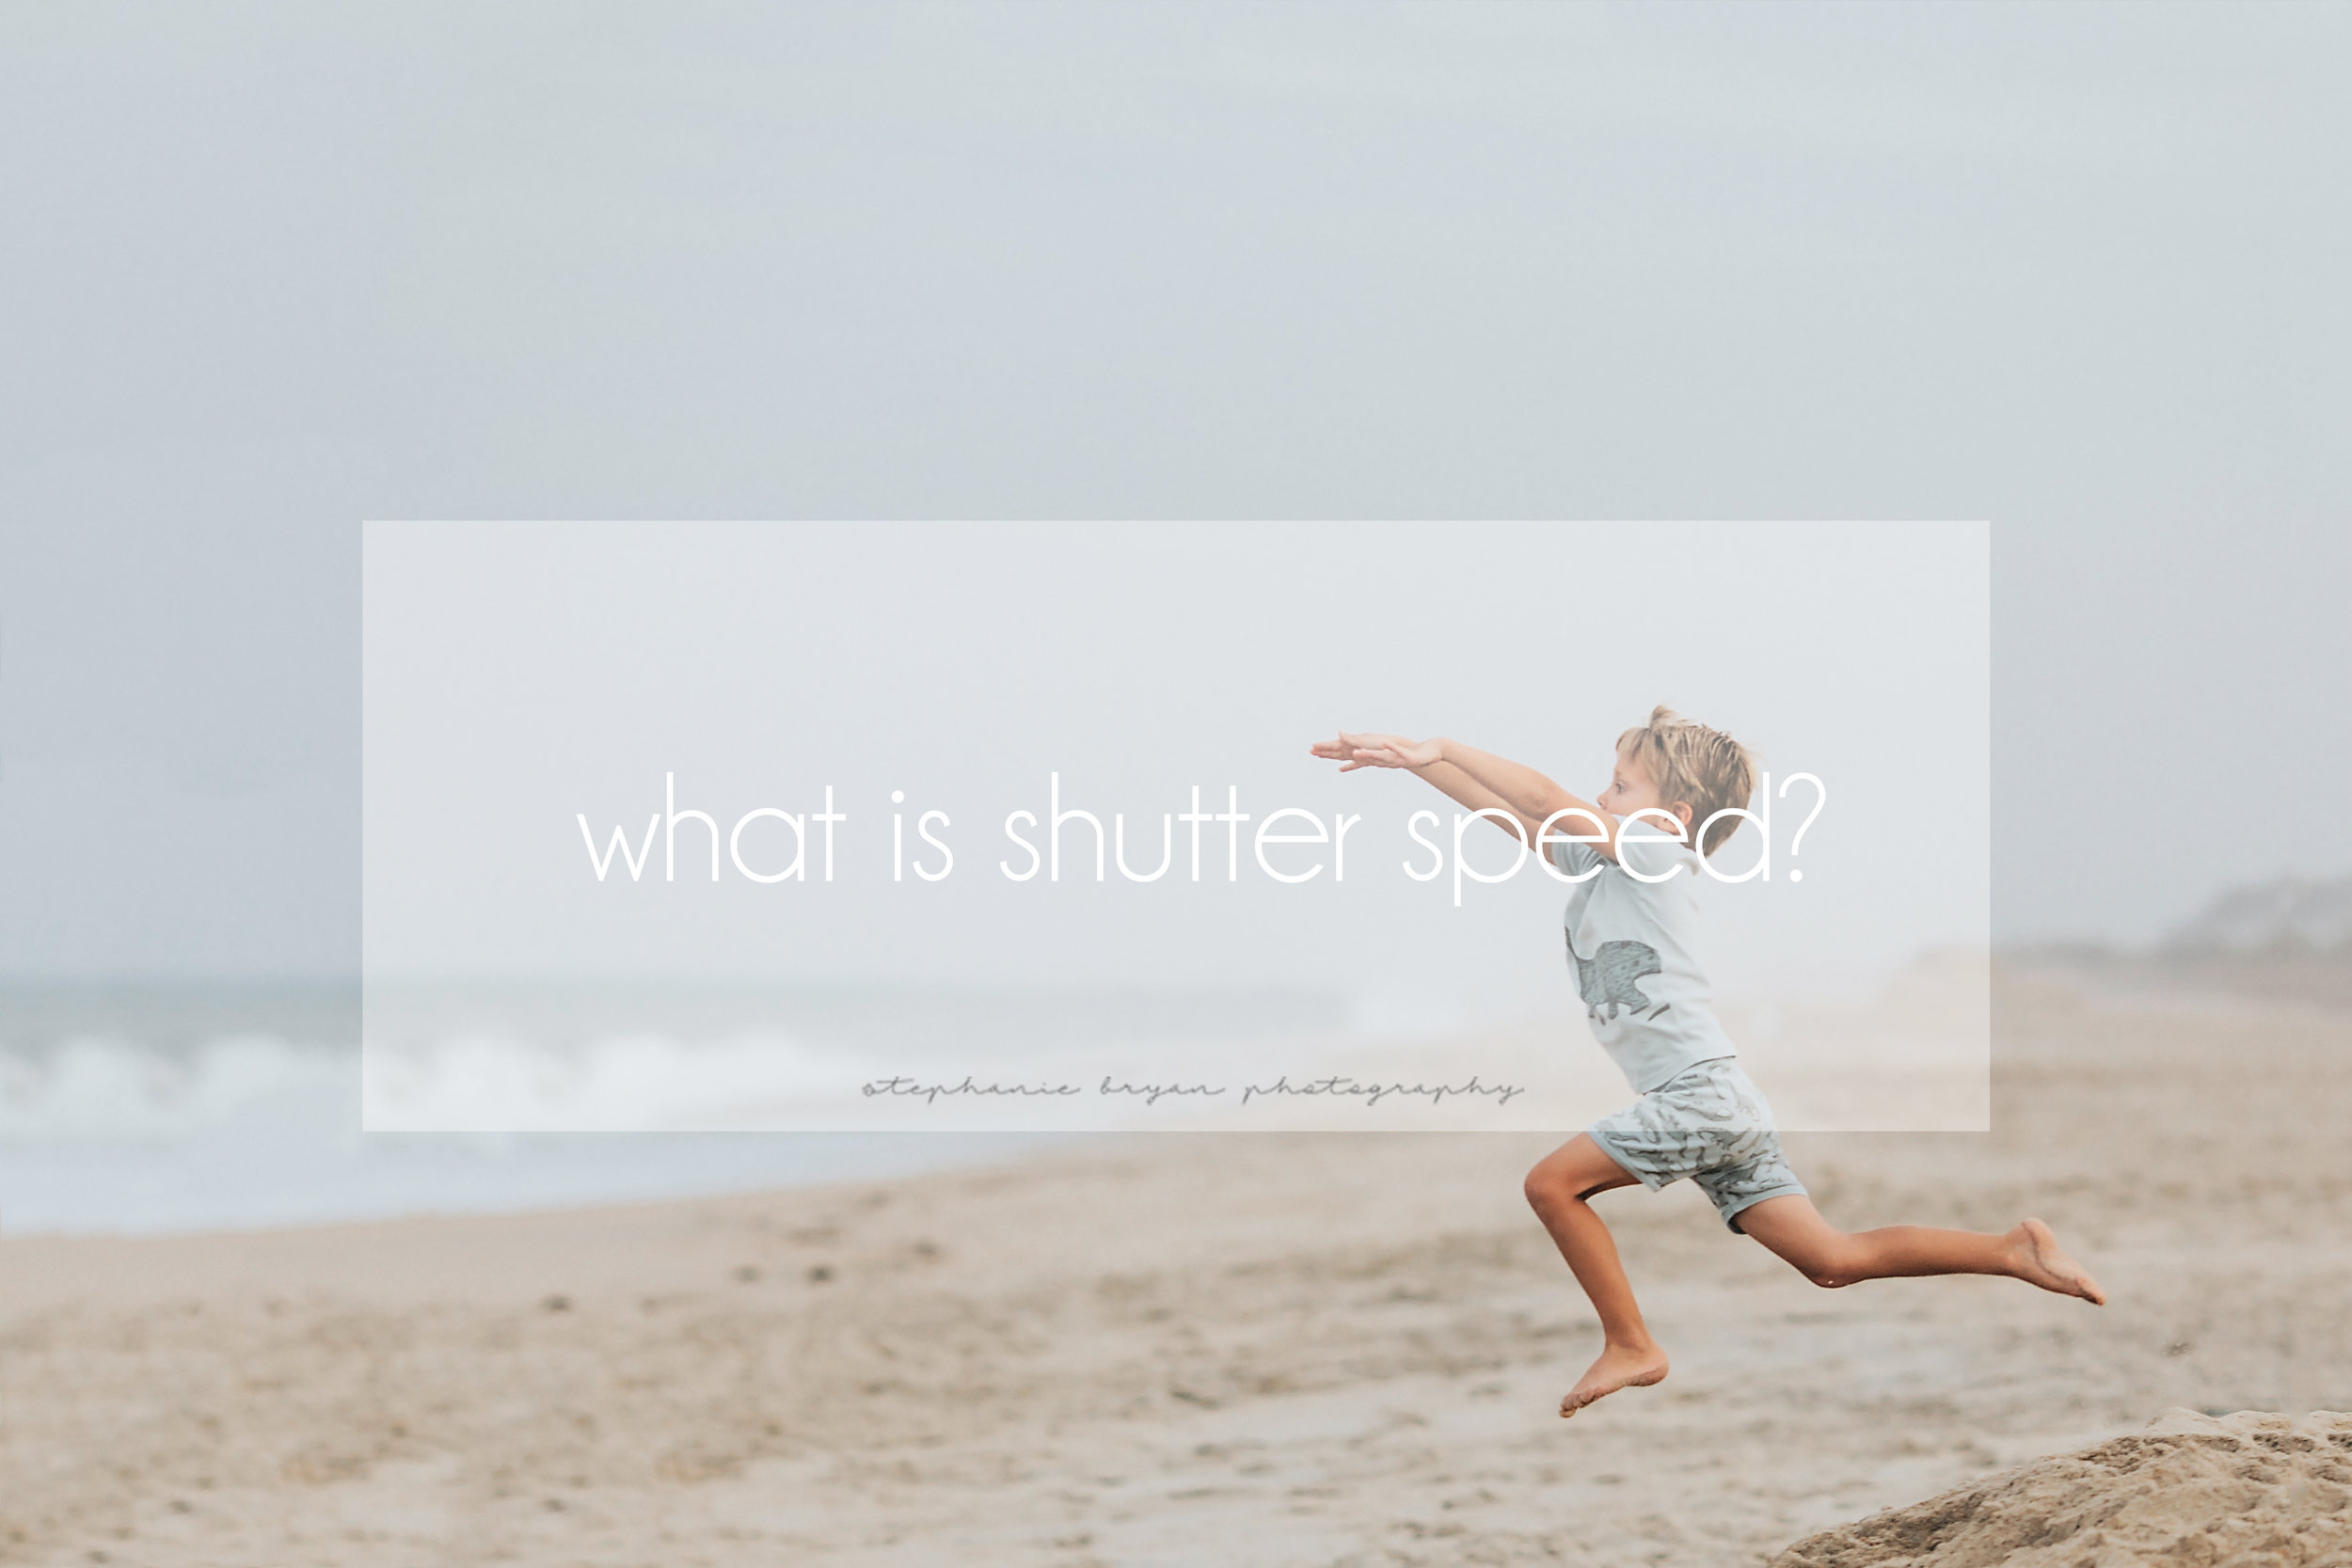 Stephanie Bryan Photography - What is shutter speed?